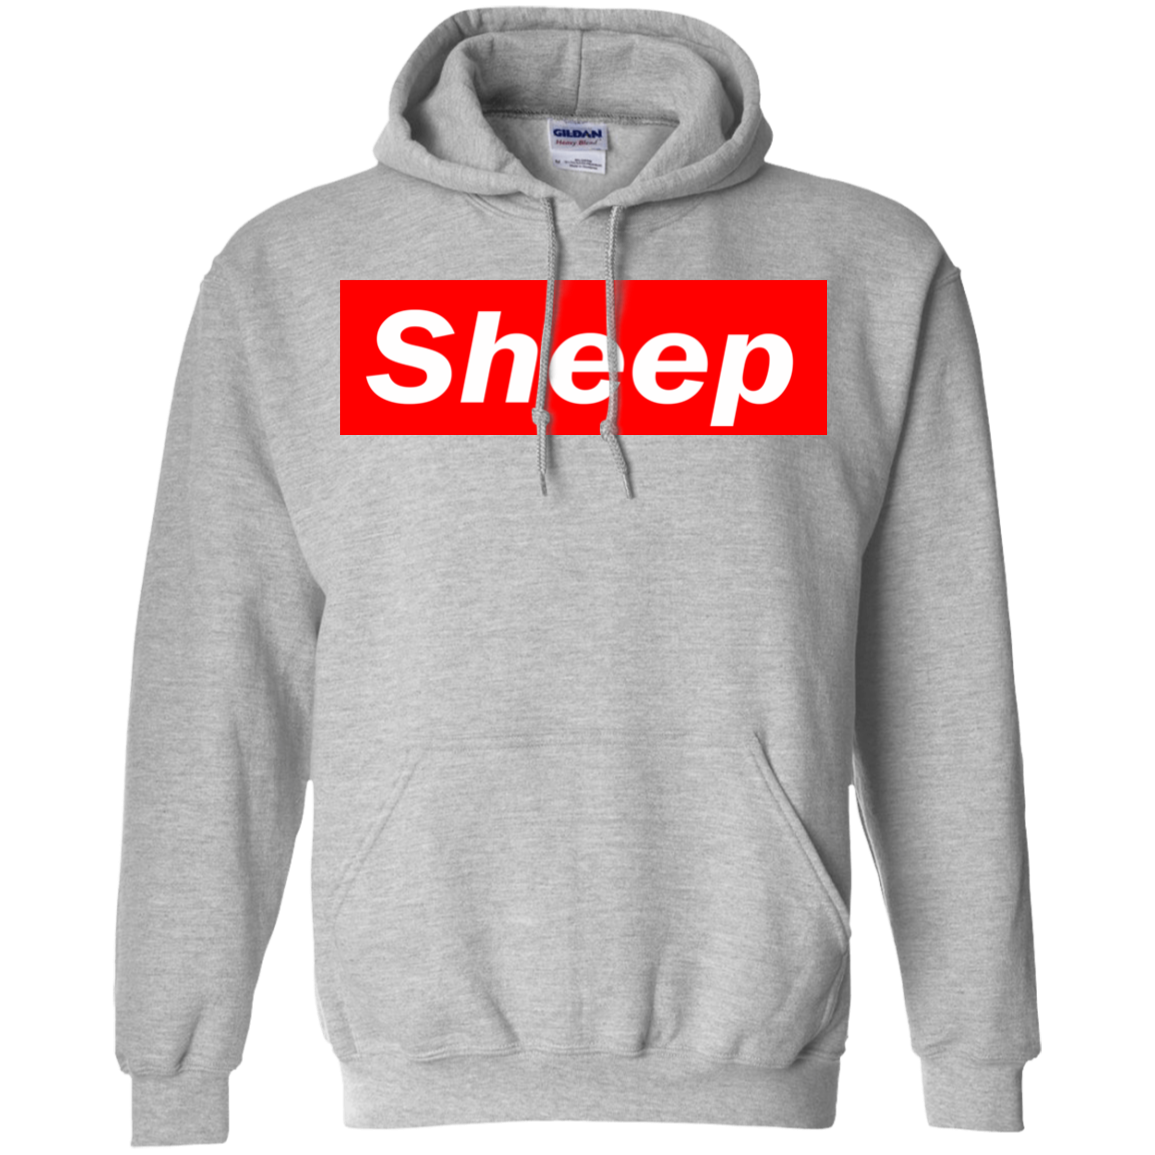 Transparent supreme sweatshirt. Sheep shirt hoodie tank